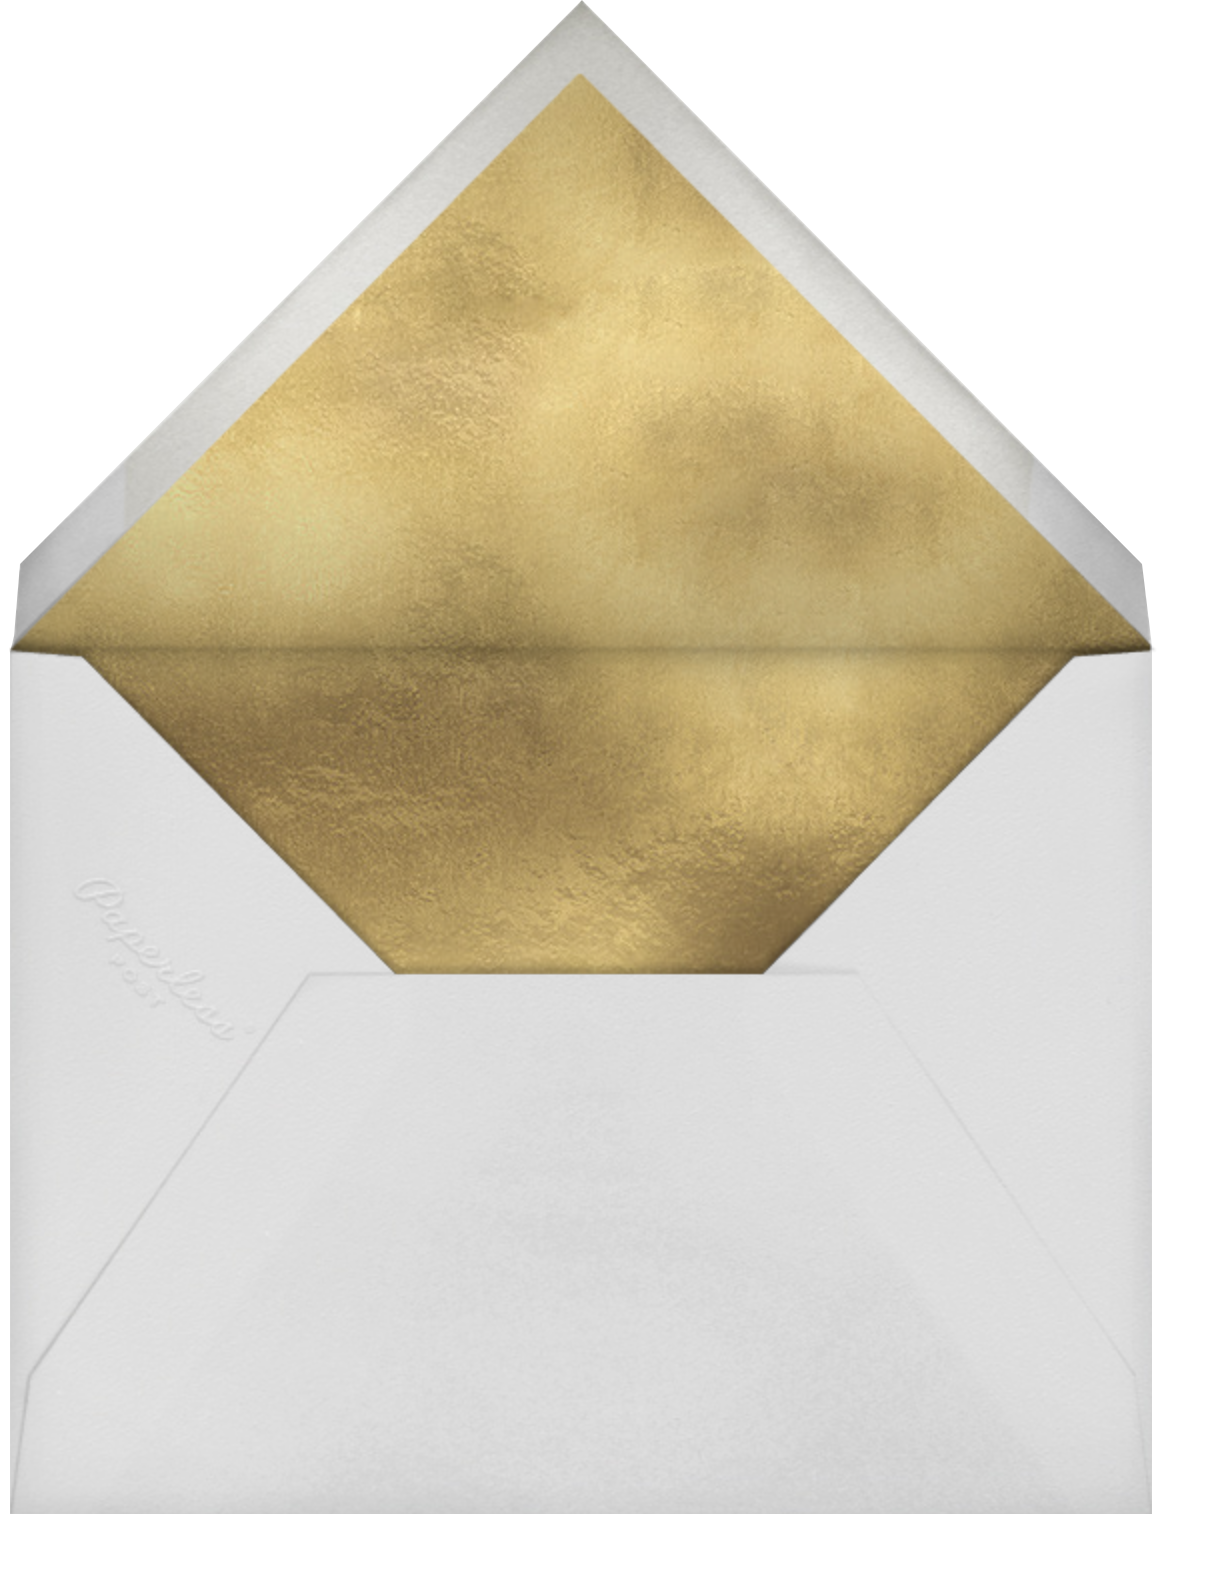 New Year Growth - Mr. Boddington's Studio - New Year - envelope back